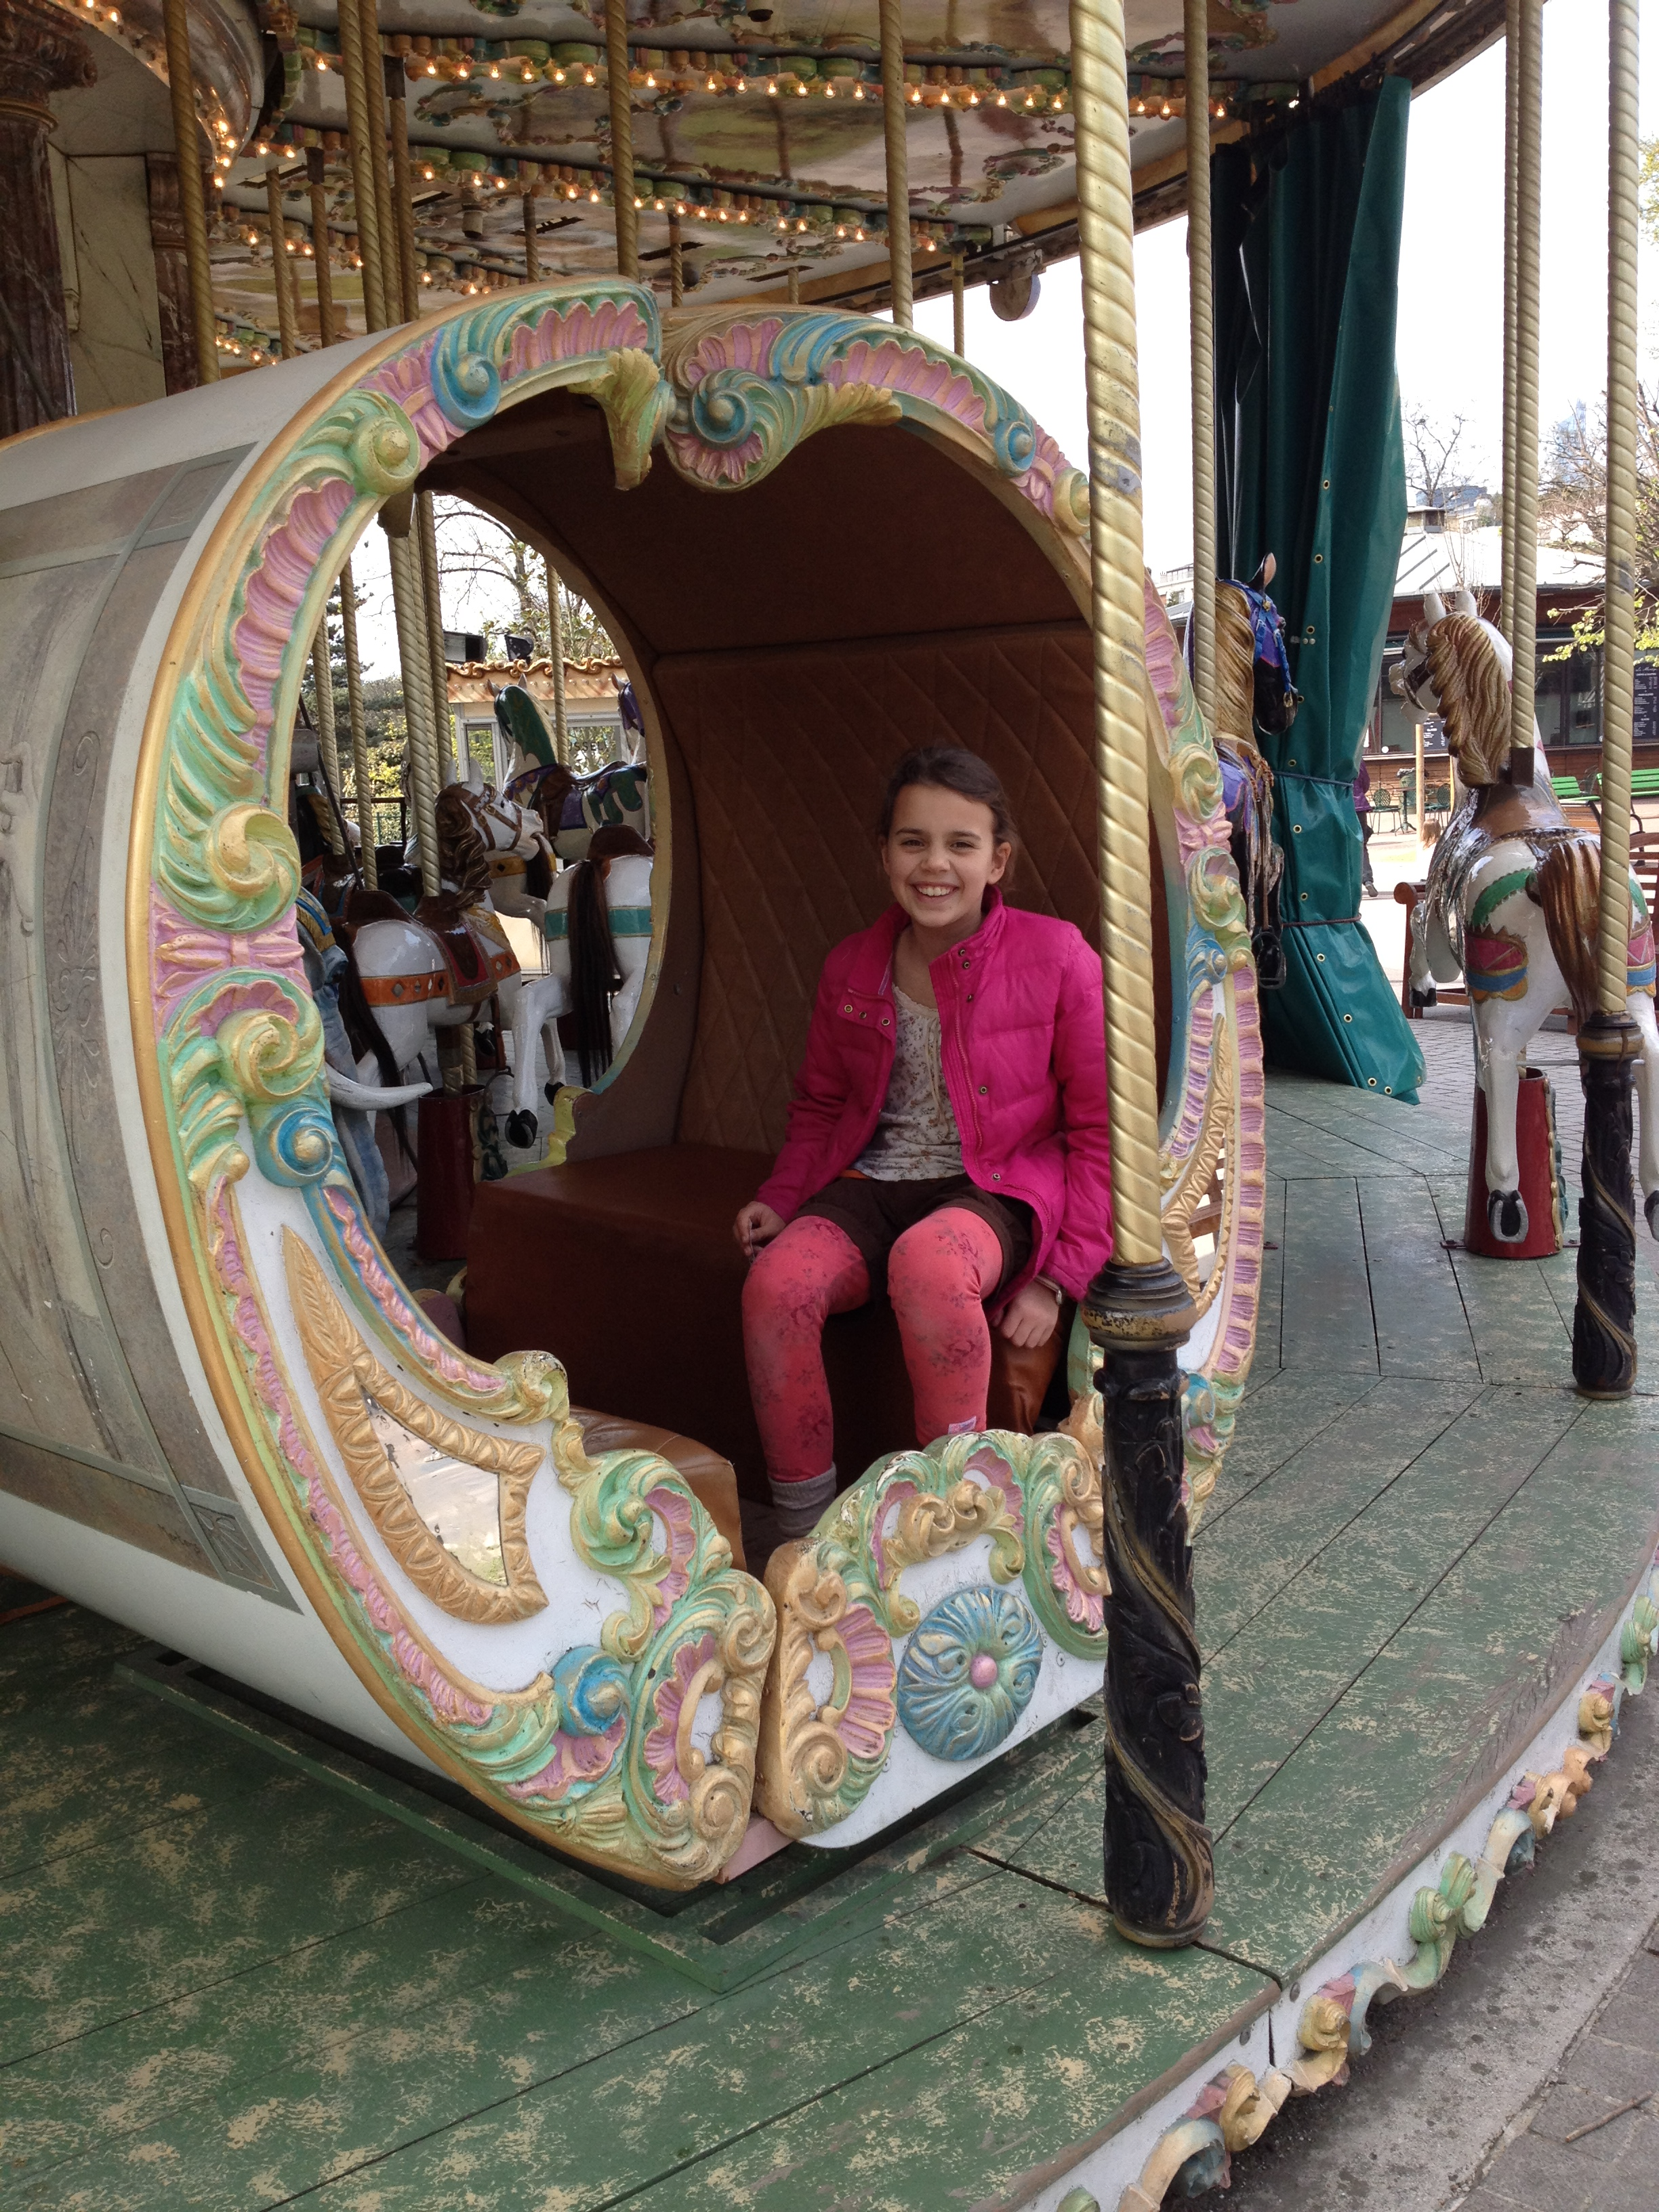 Young girl in carriage on carousel in Jardin d'Acclimatation